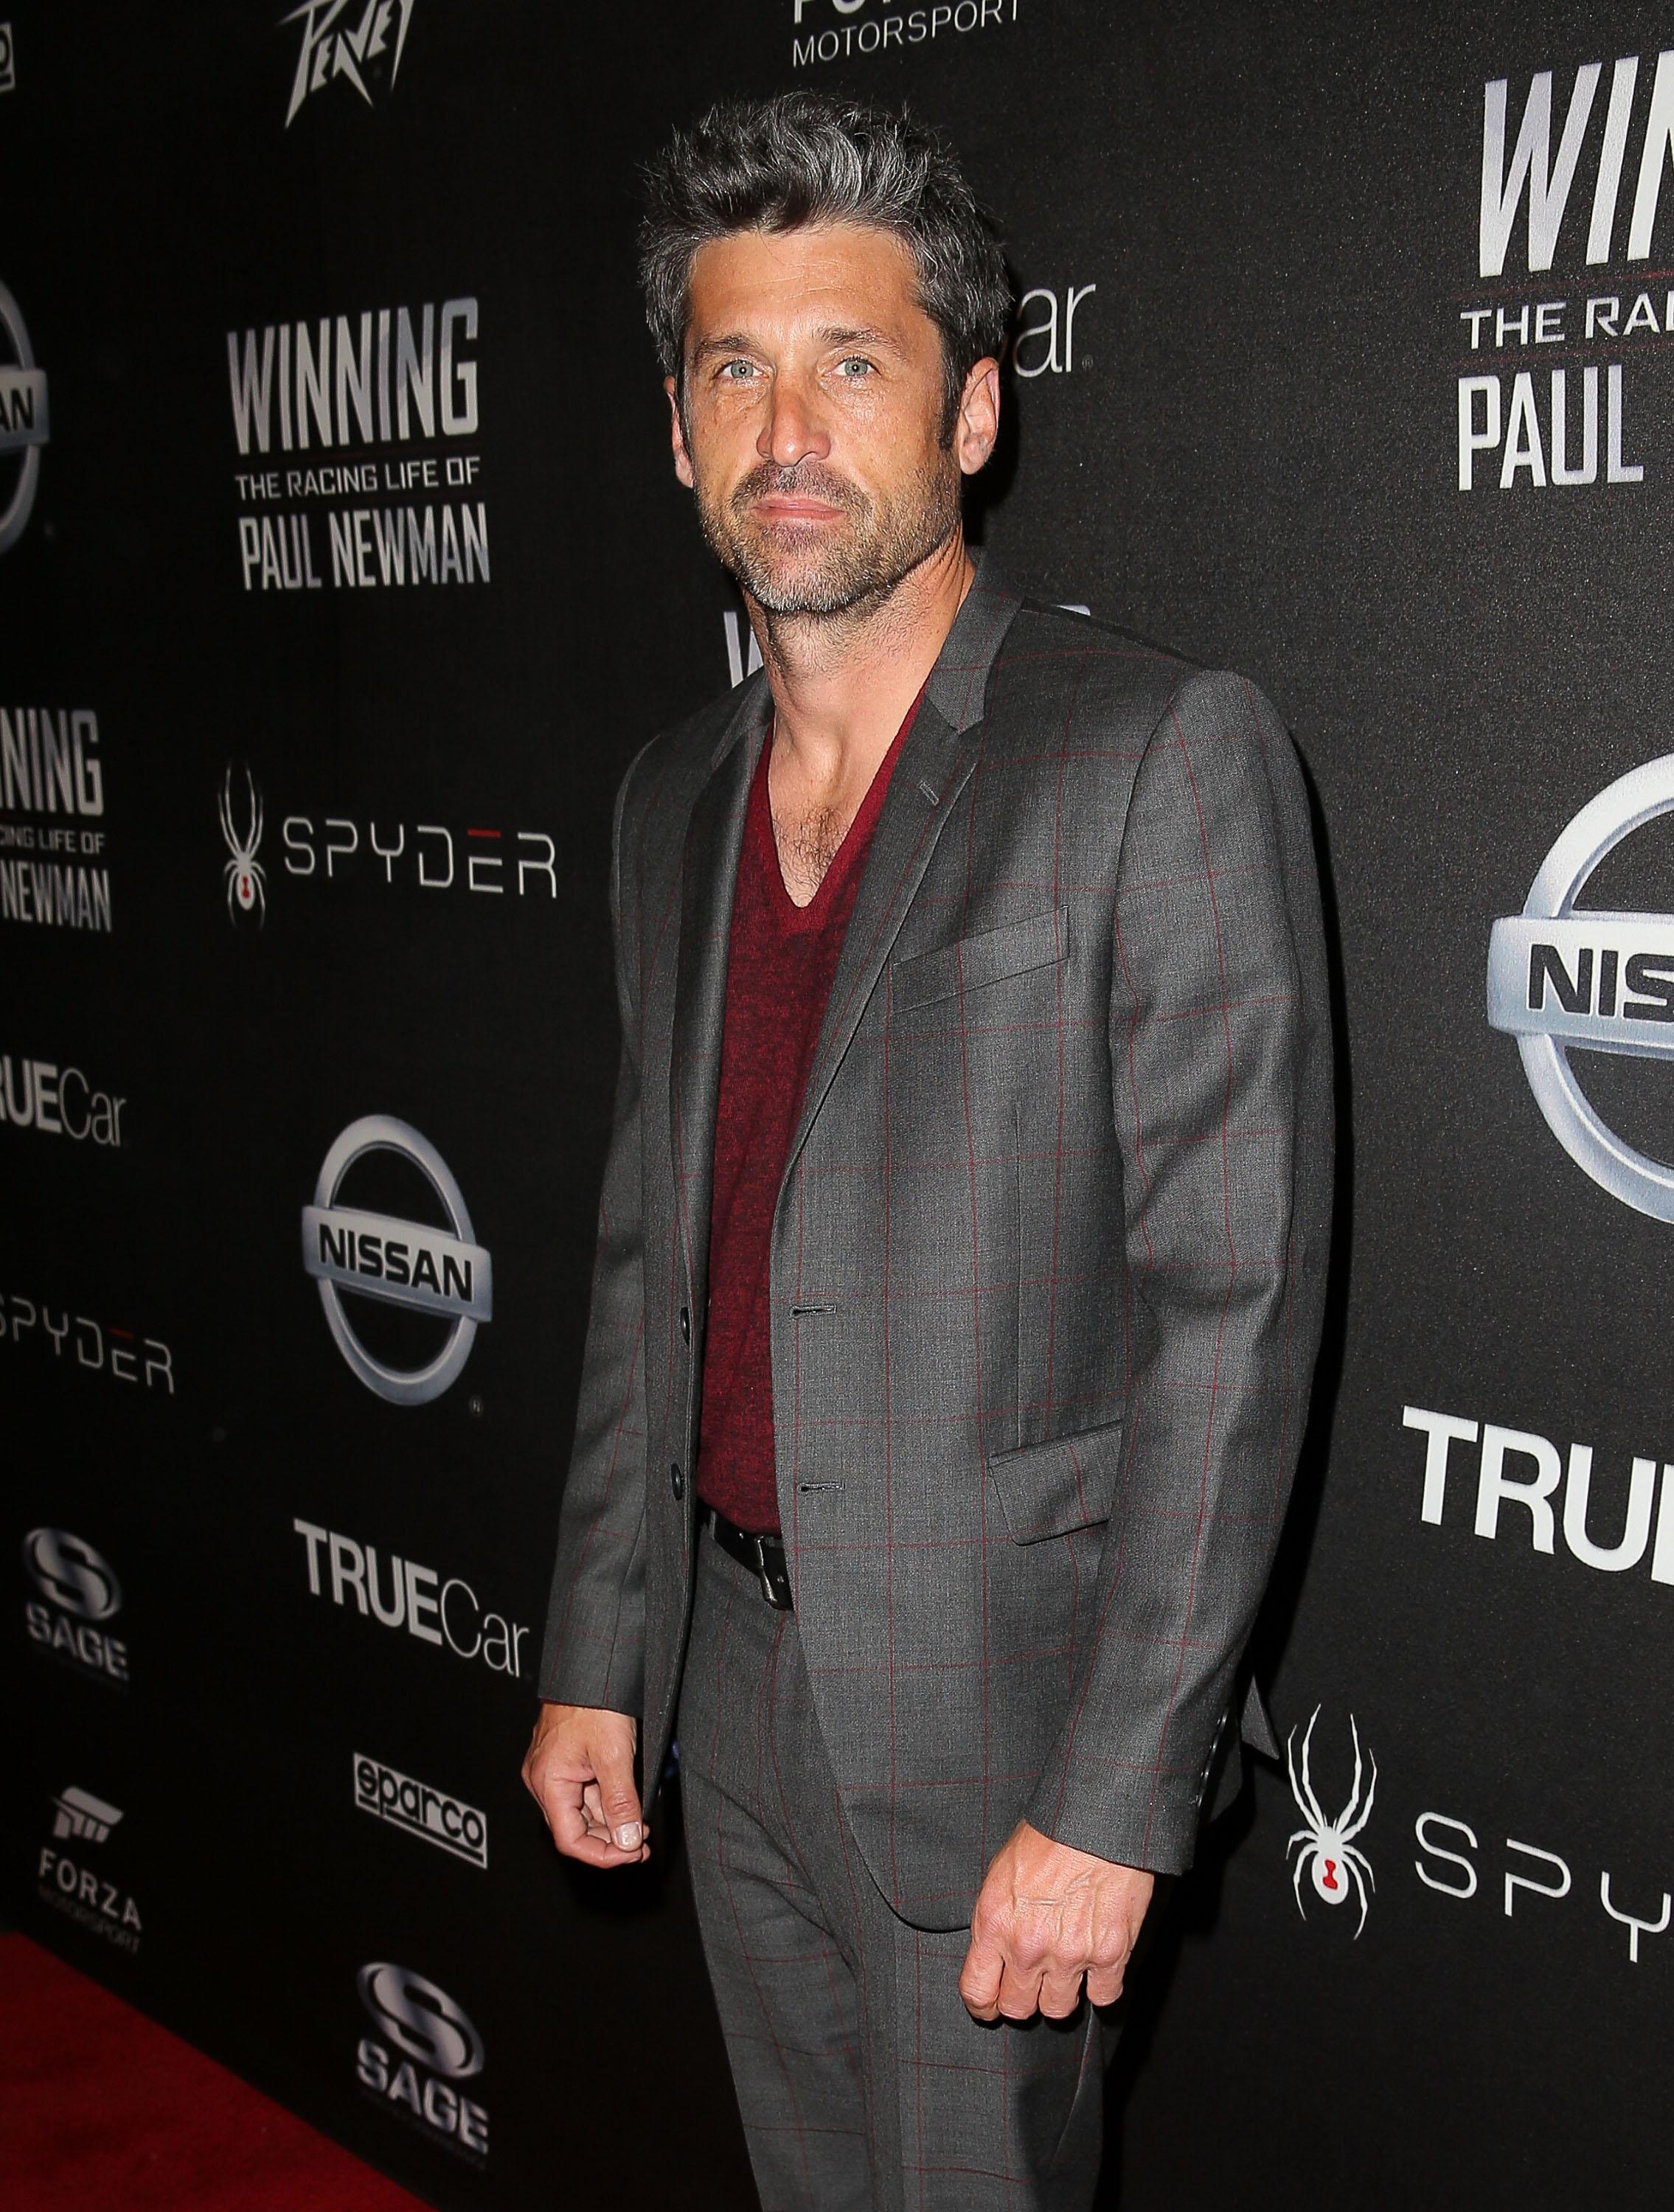 Patrick Dempsey, Jay Leno Weigh in on Paul Newman in Racing Documentary